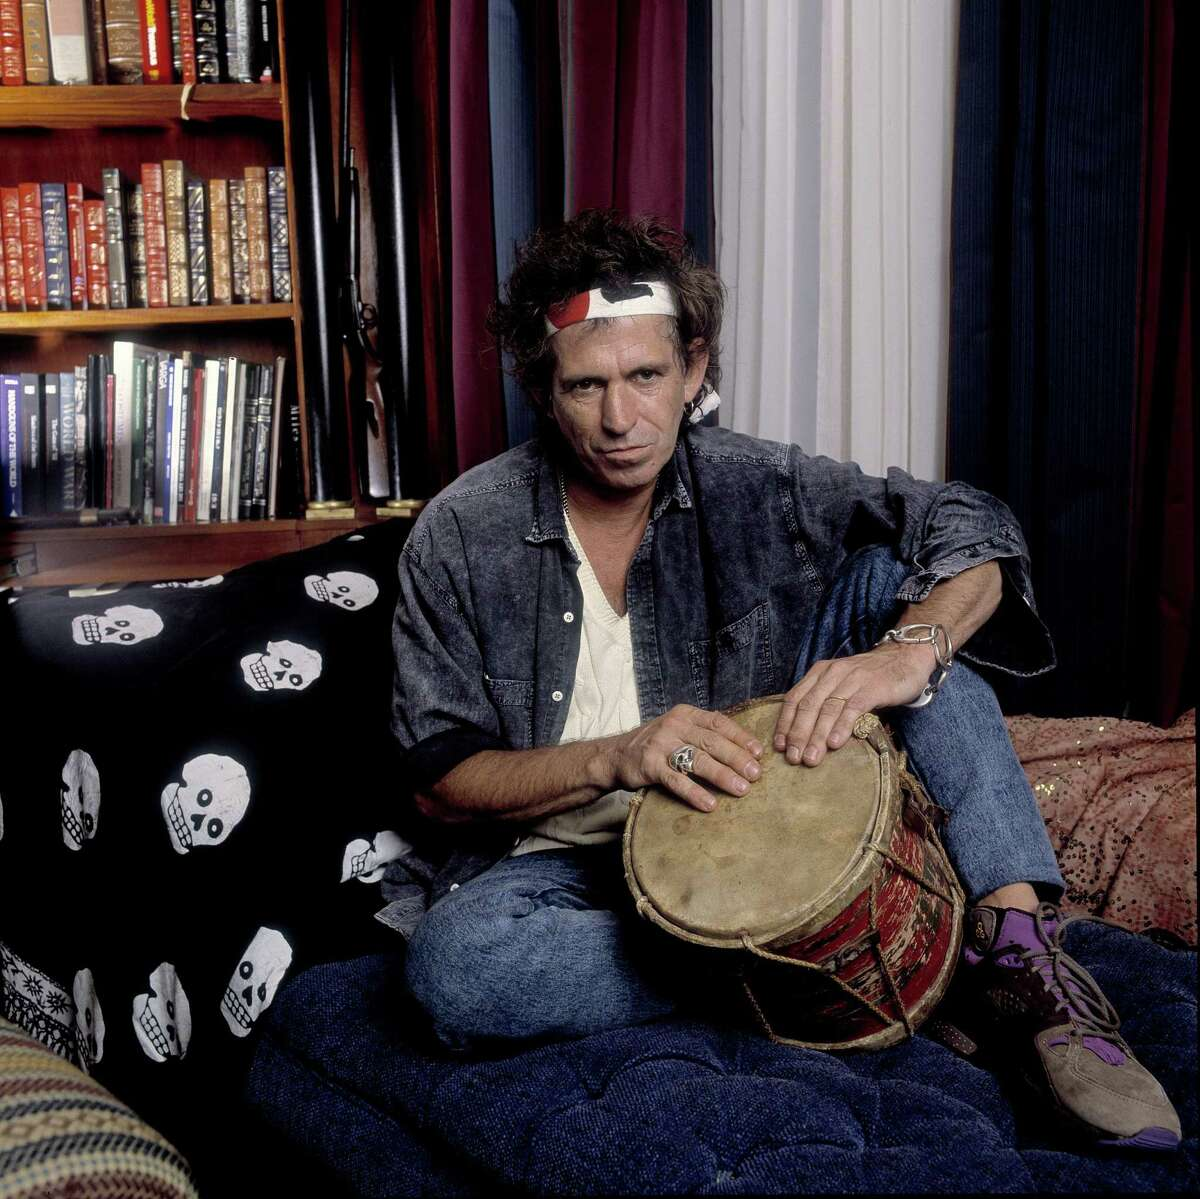 Keith Richards on 7/28/93 in Weston, Ct. in Various Locations, (Photo by Paul Natkin/WireImage)